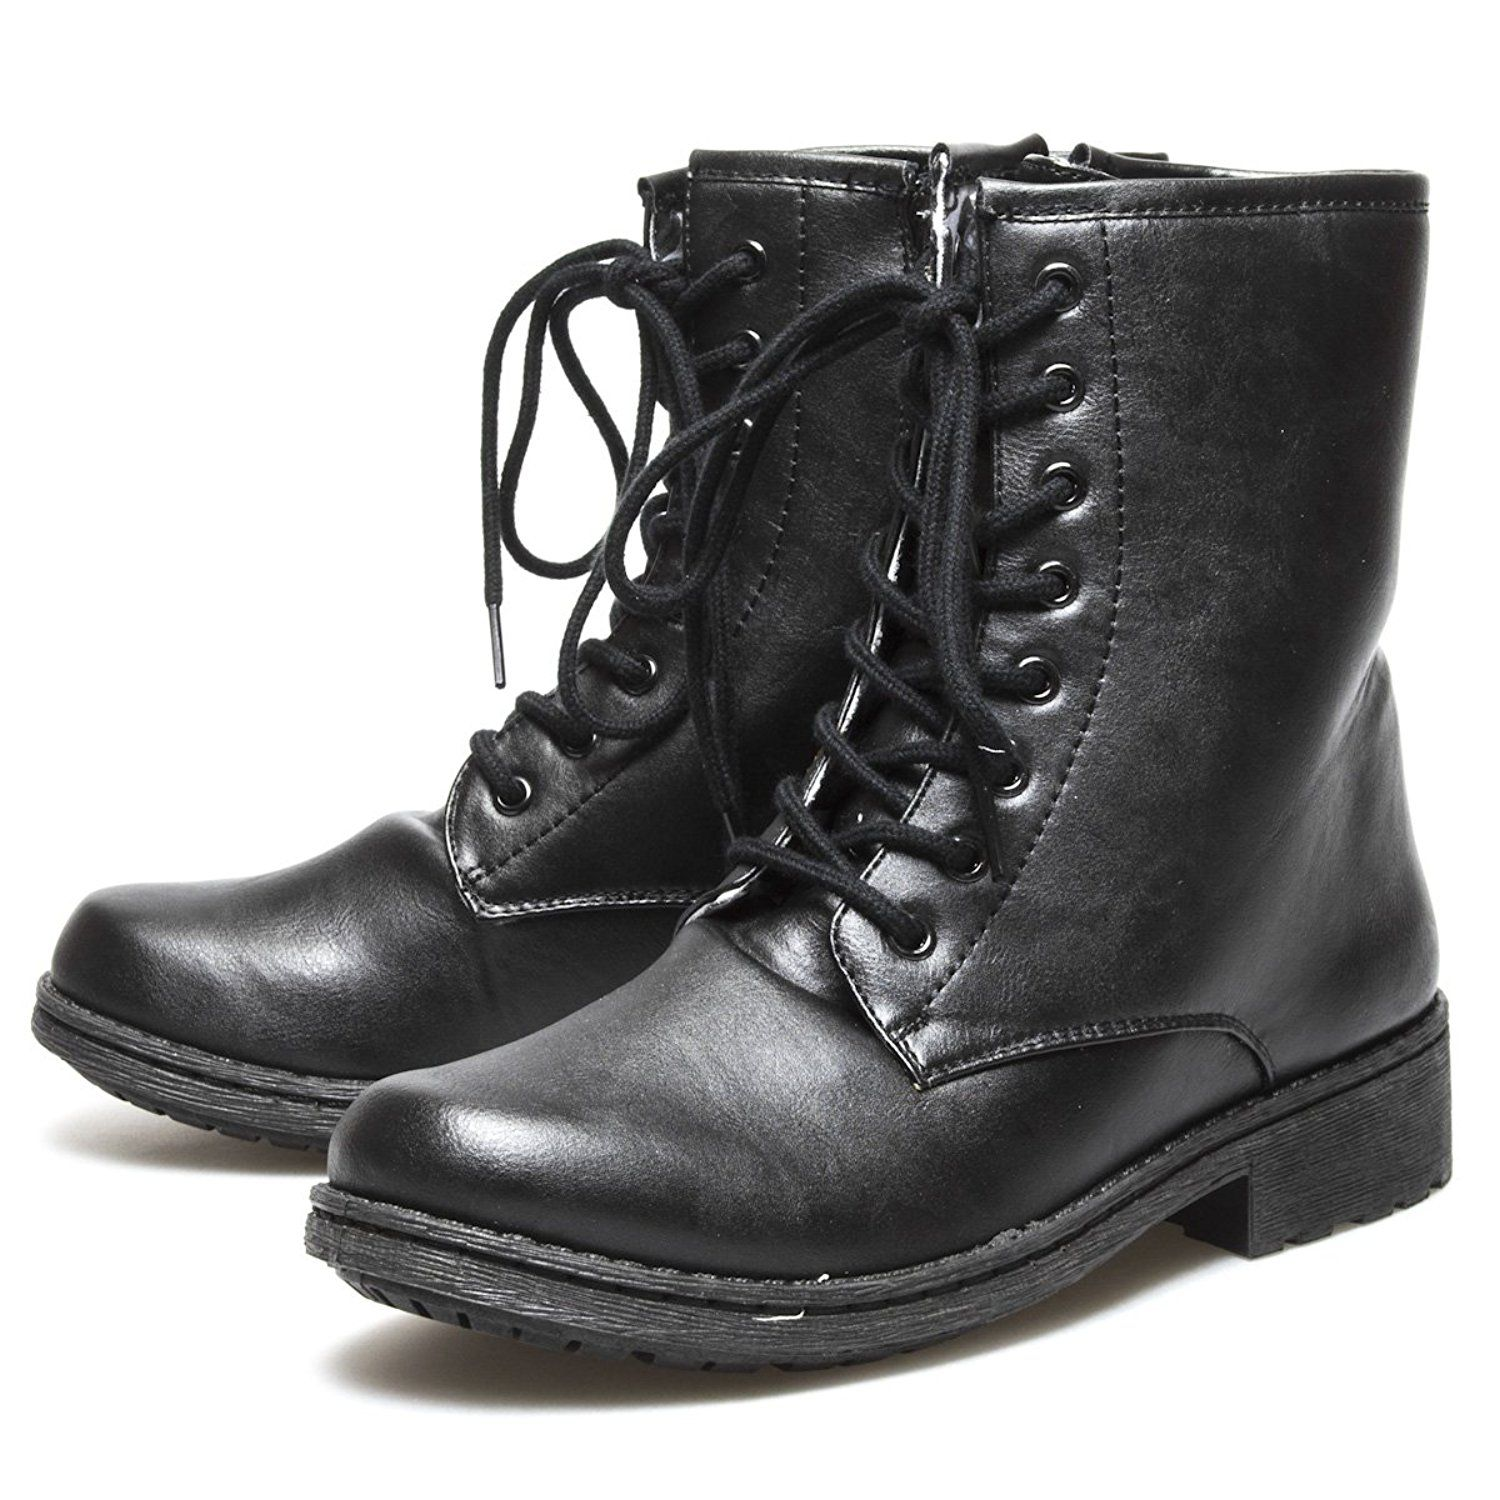 Qupid Womens MISSILE04 Round Toe Military Combat low Heel Ankle Boot => Startling review available here  : Booties